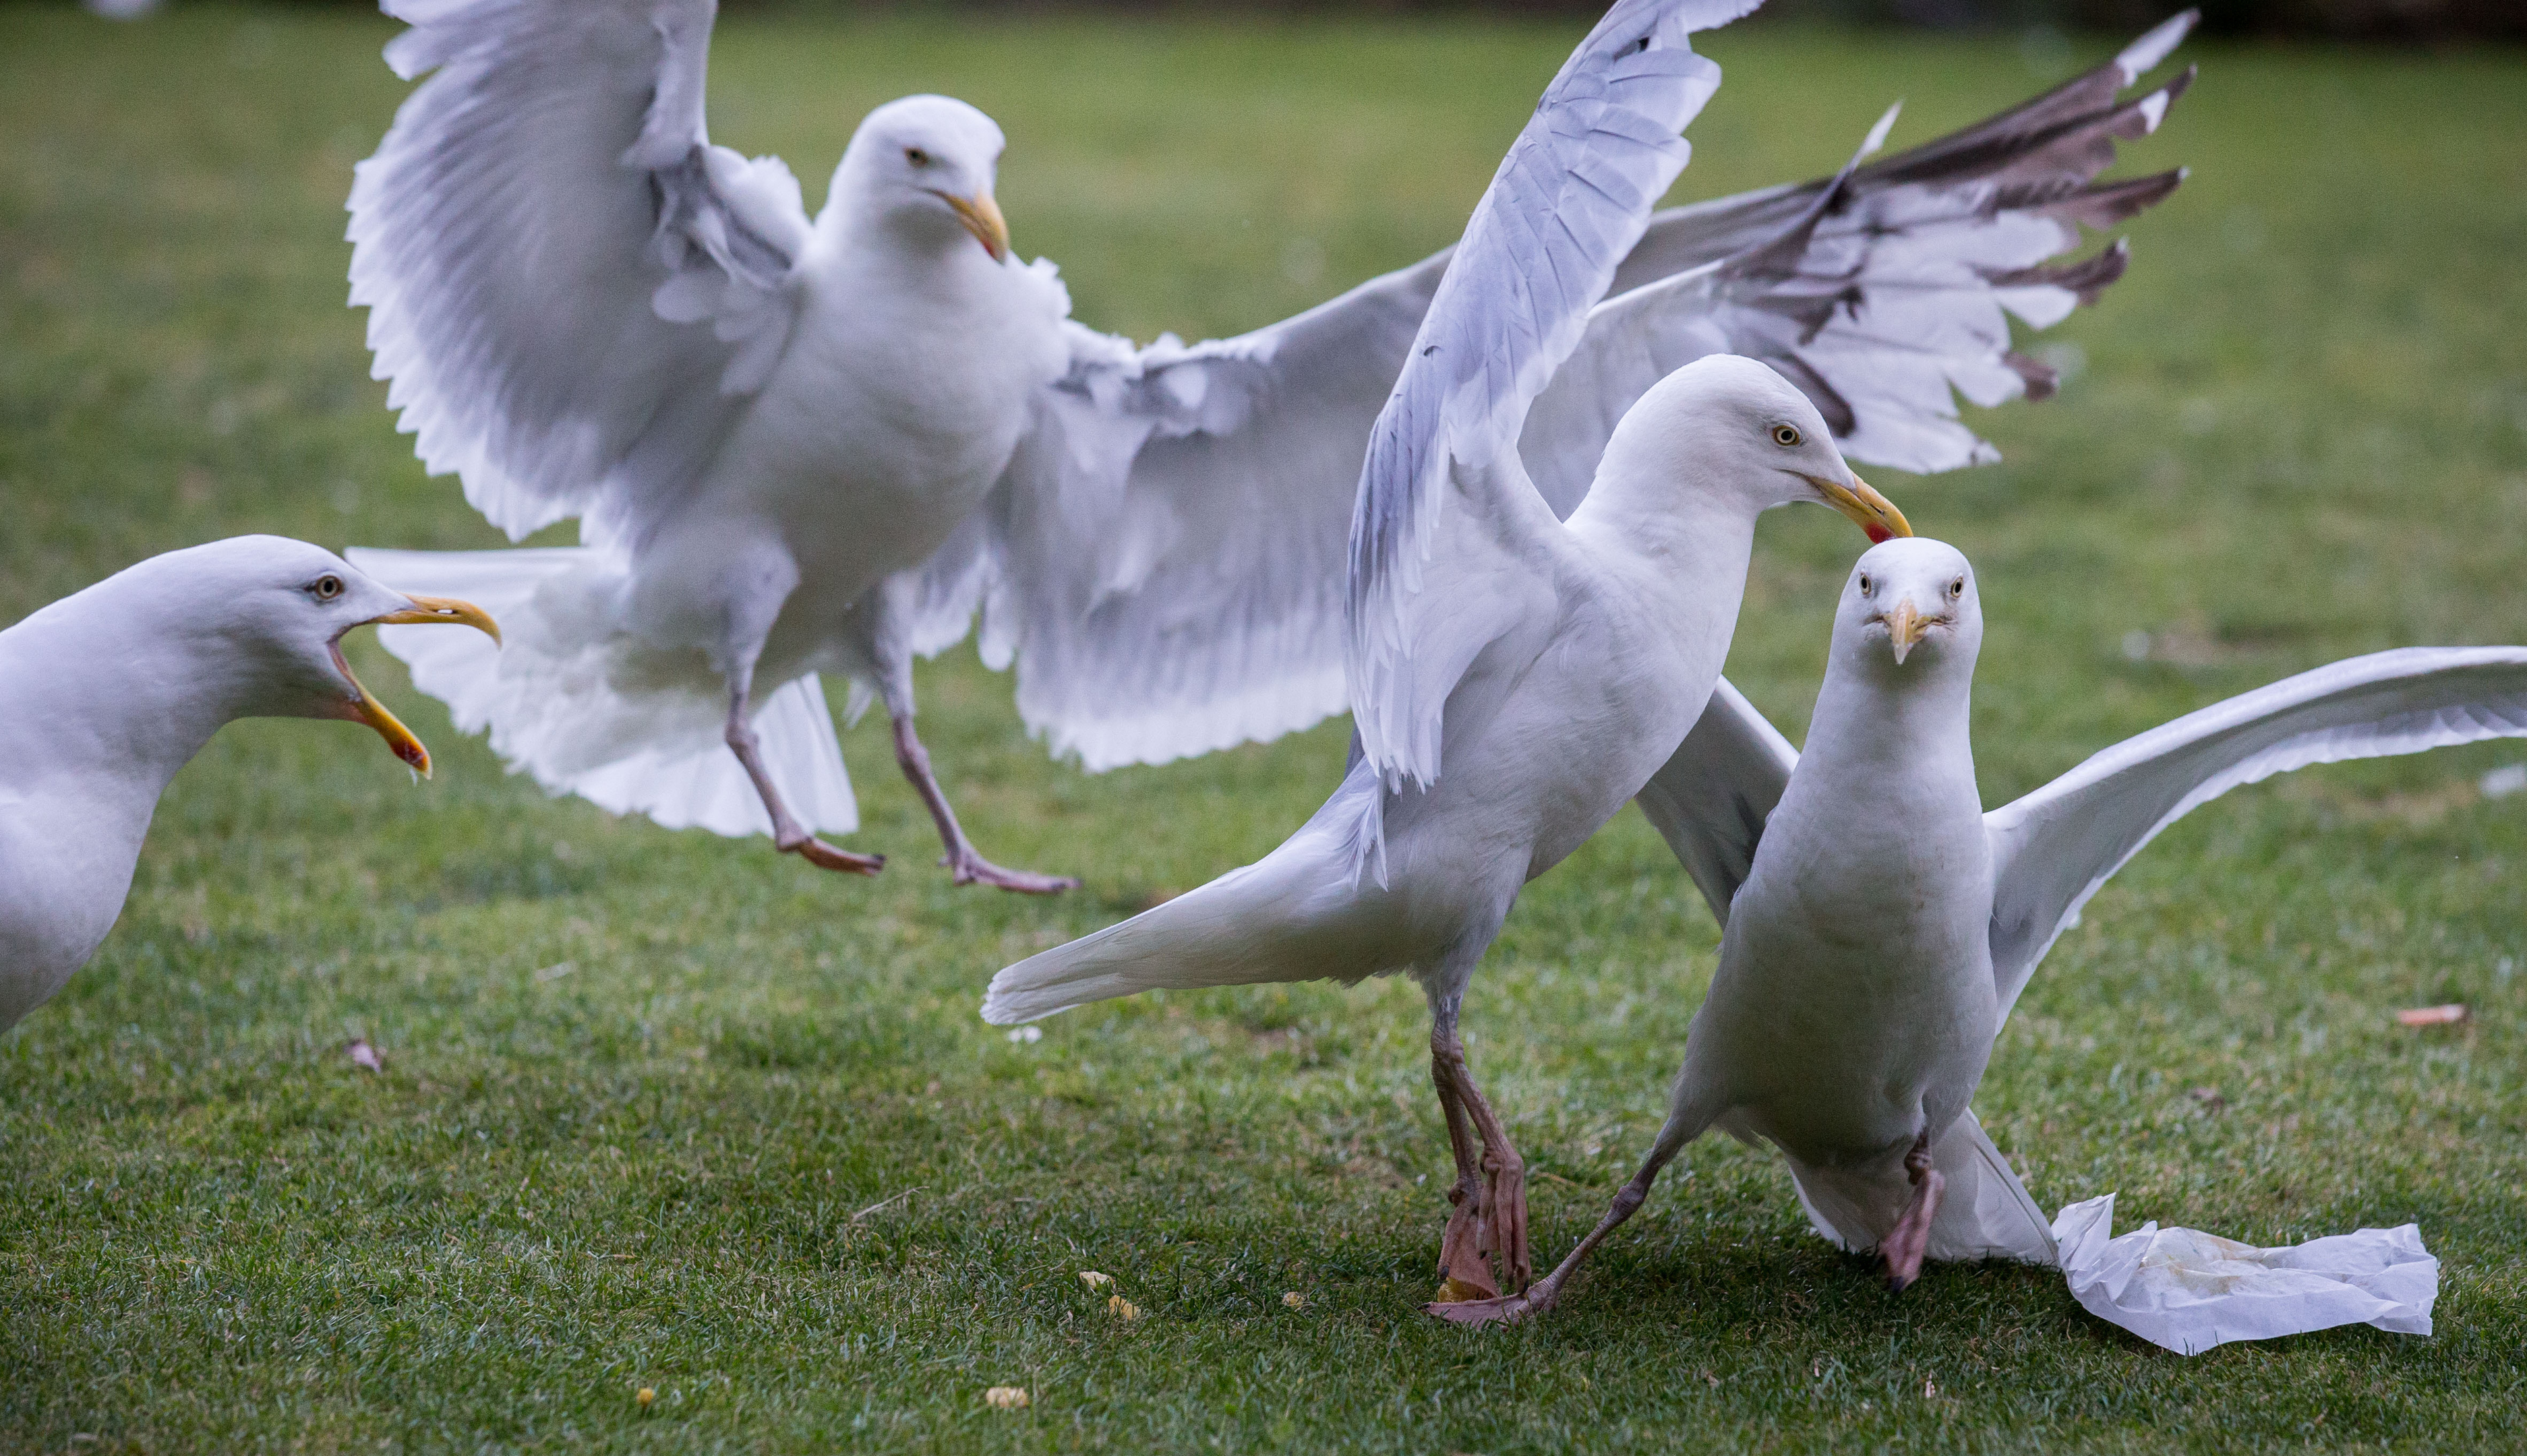 Bird Free has proved successful at Tillydrone's Pennan Road tenement block and has kept seagulls from landing.